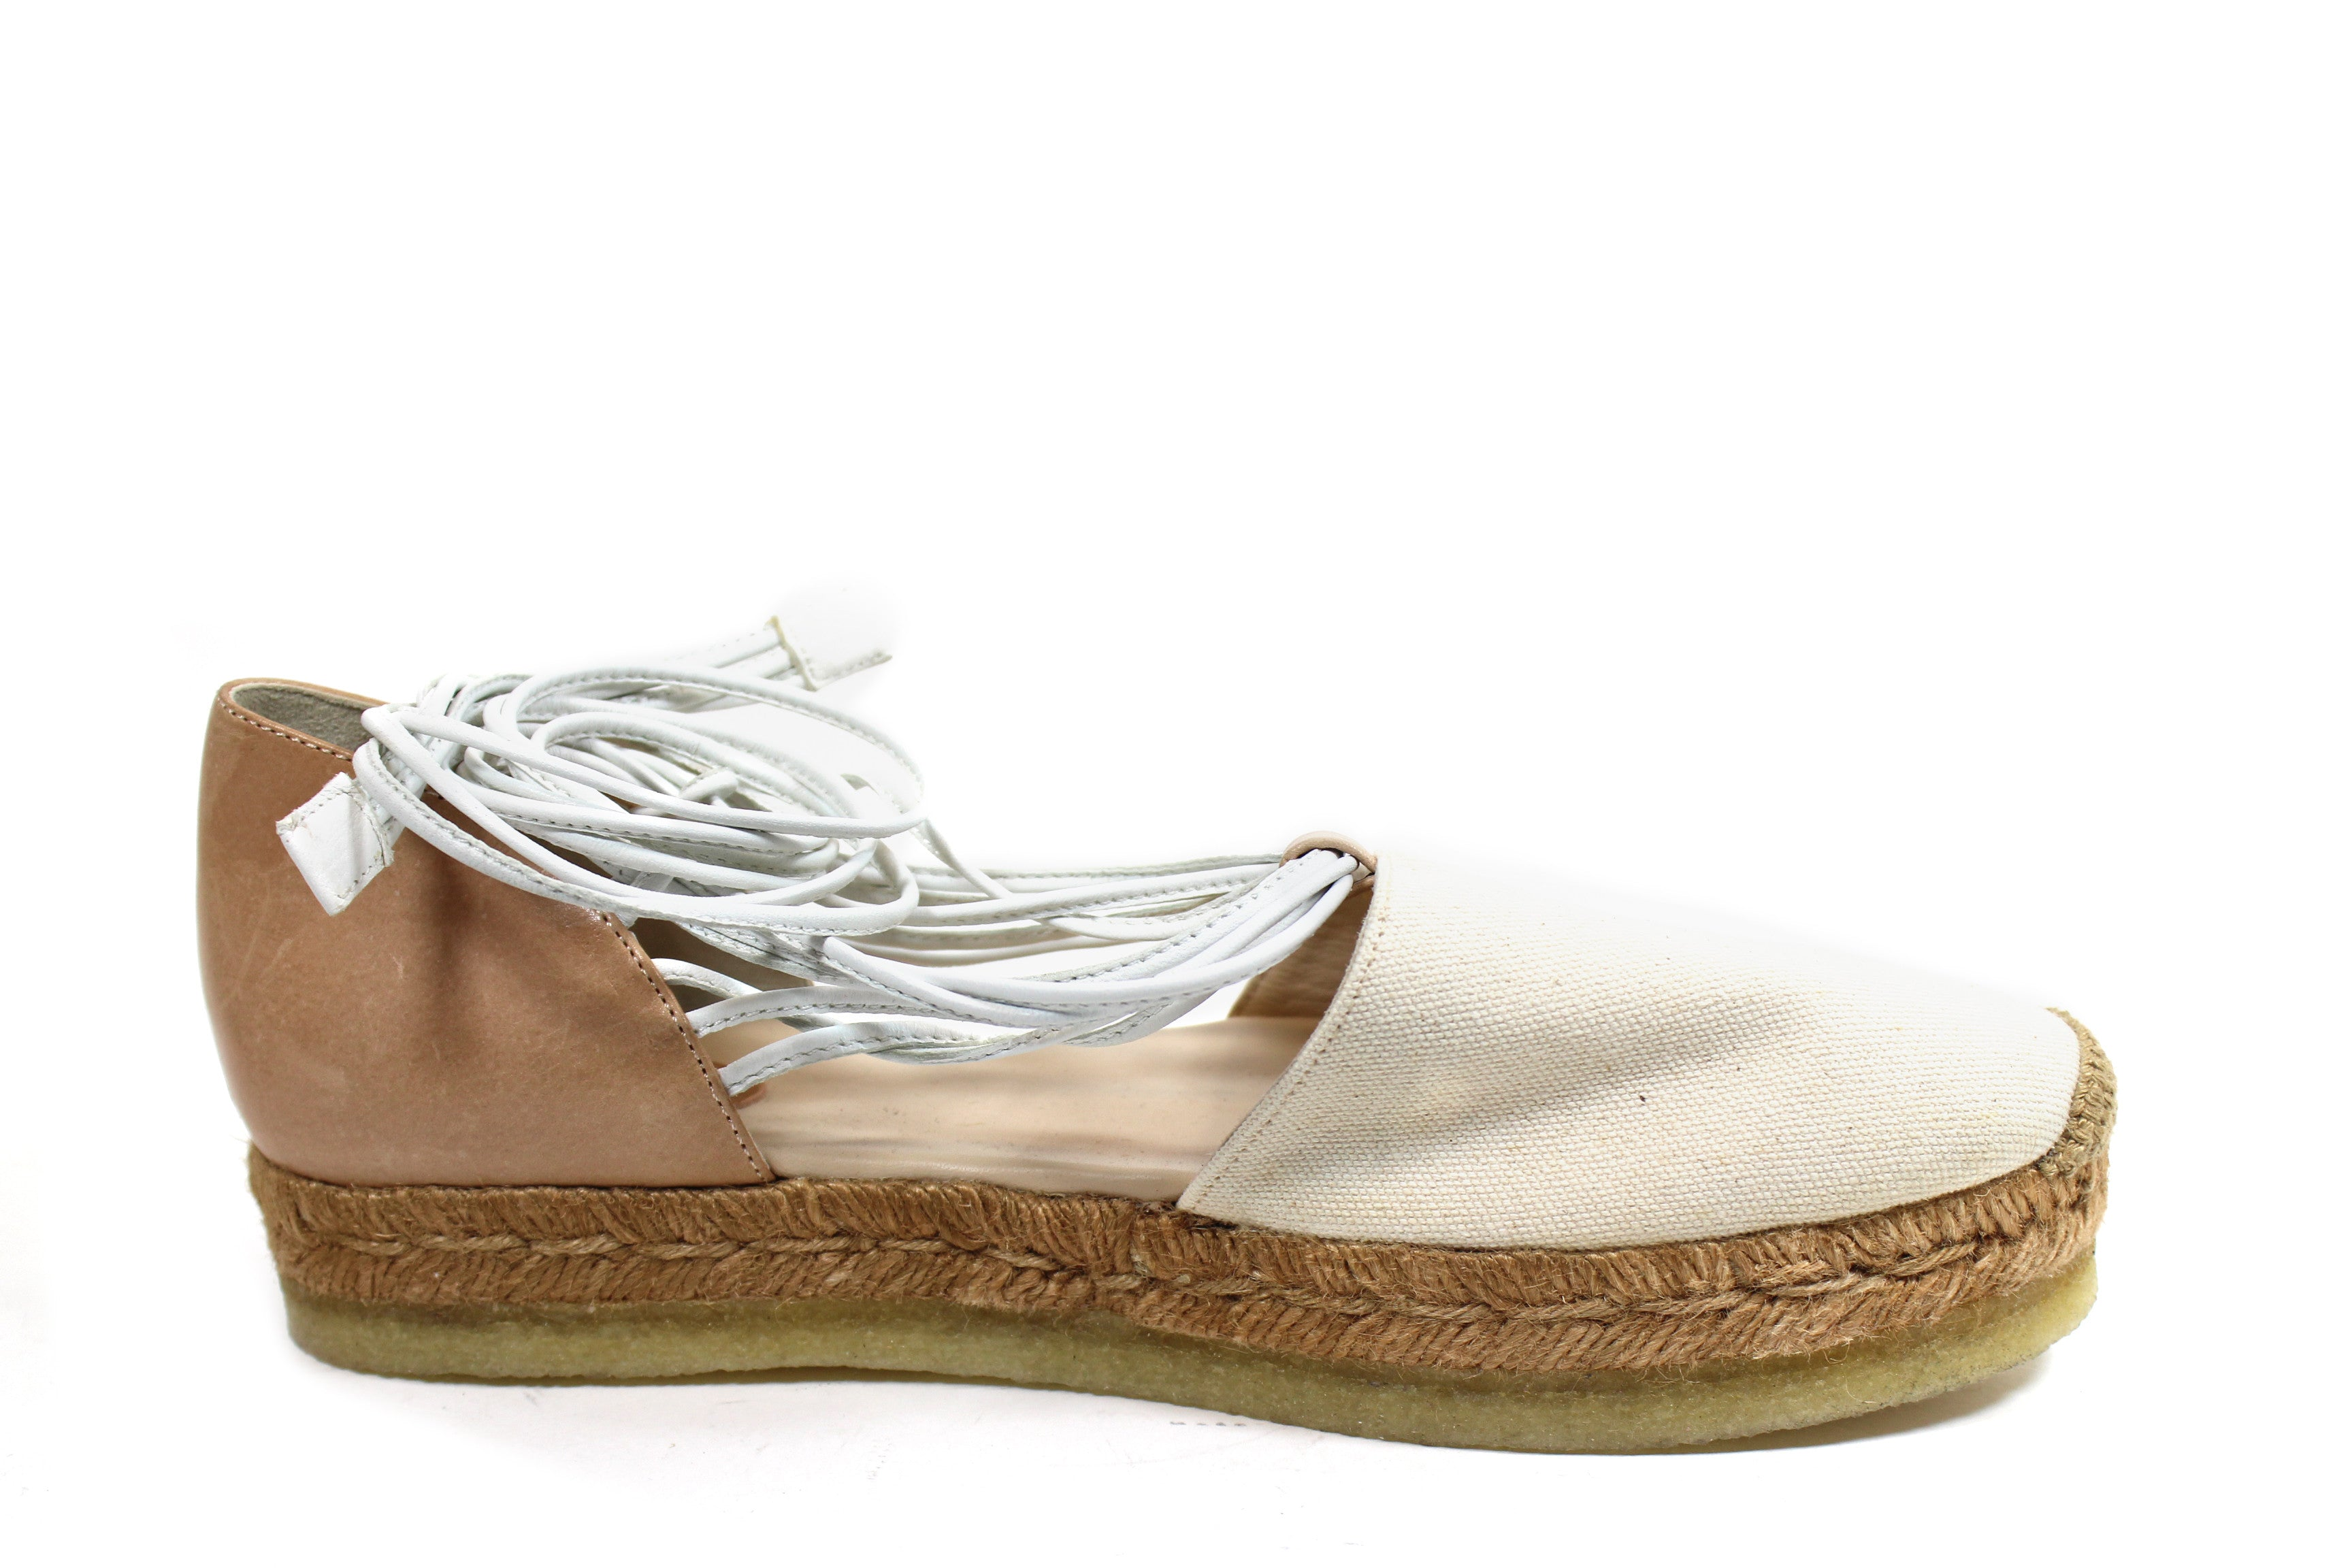 Chloe Canvas and Leather Espadrilles w Leather Ties (Size 39)